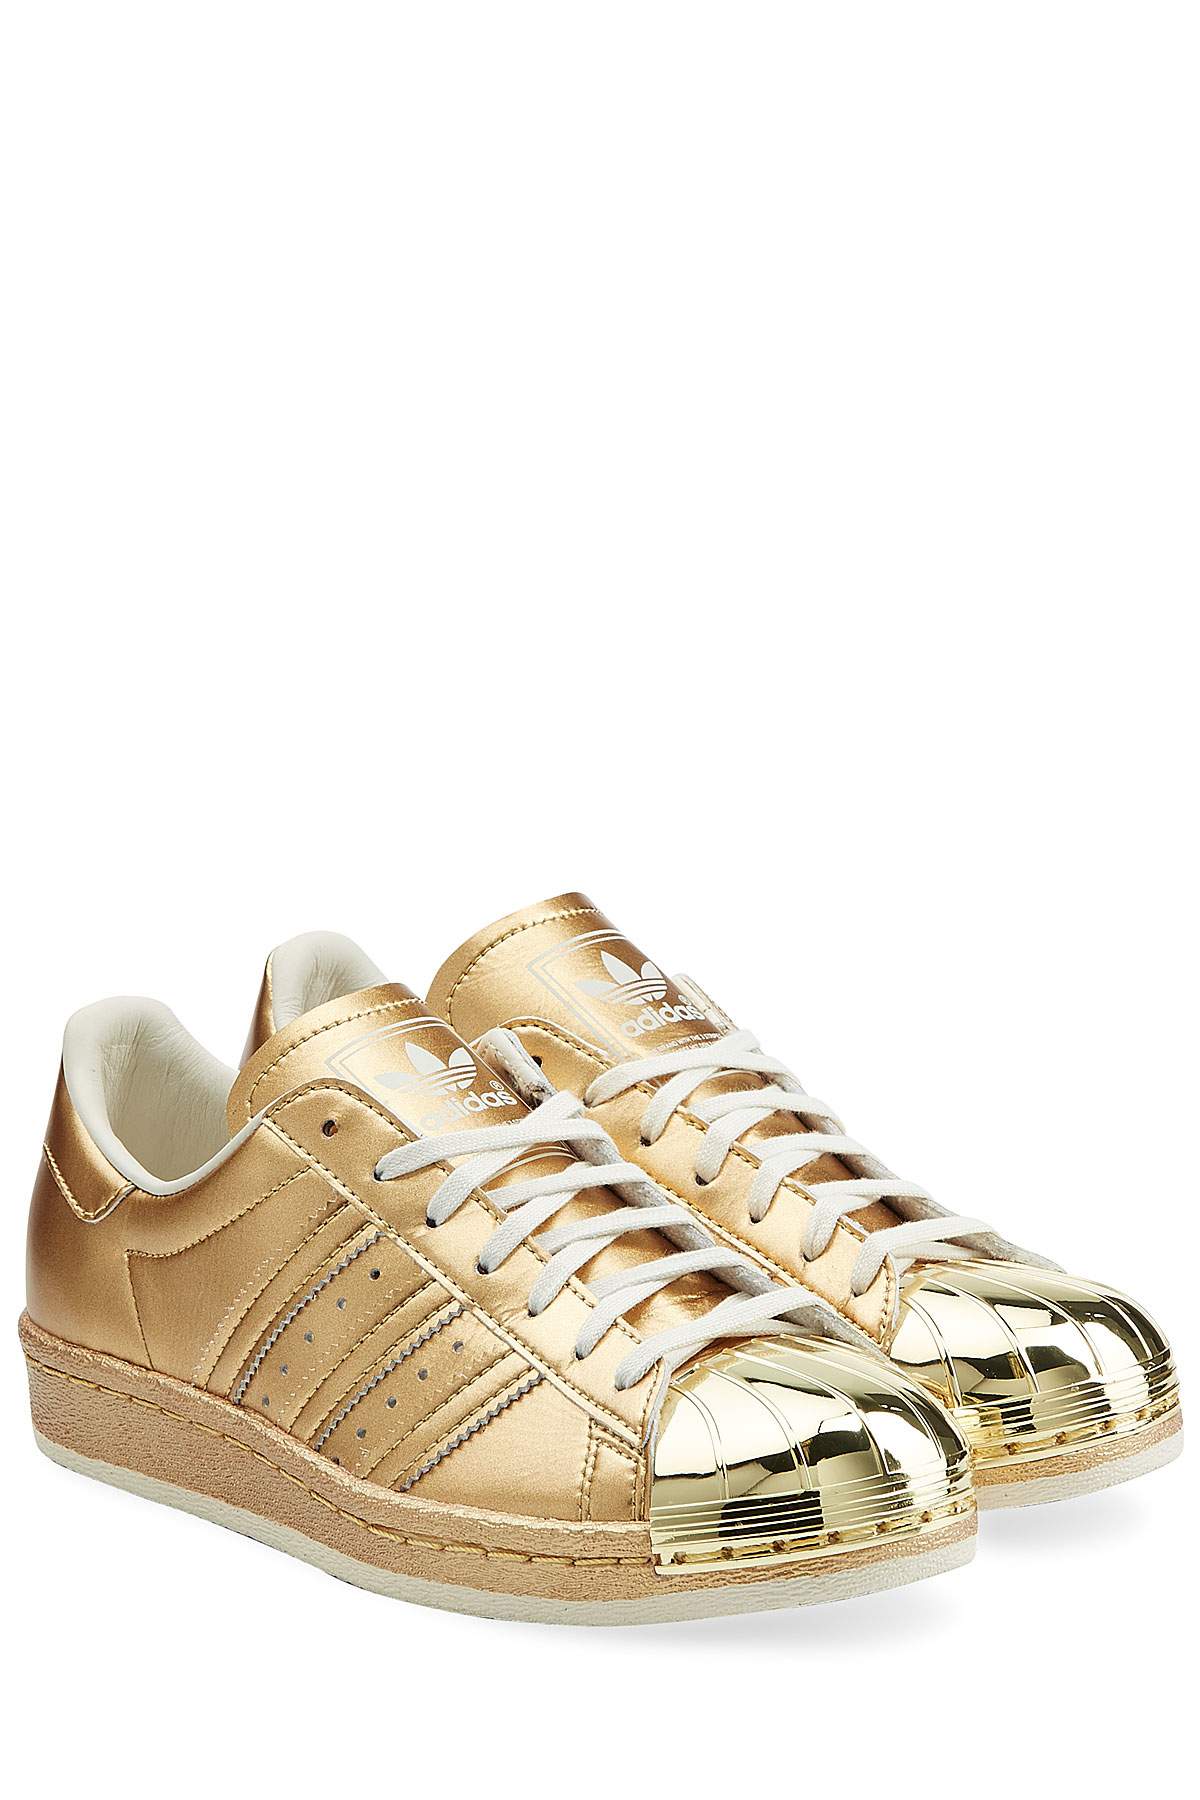 Adidas Cap-Toe Leather Sneakers free shipping pay with paypal 6ECl9S5pZN